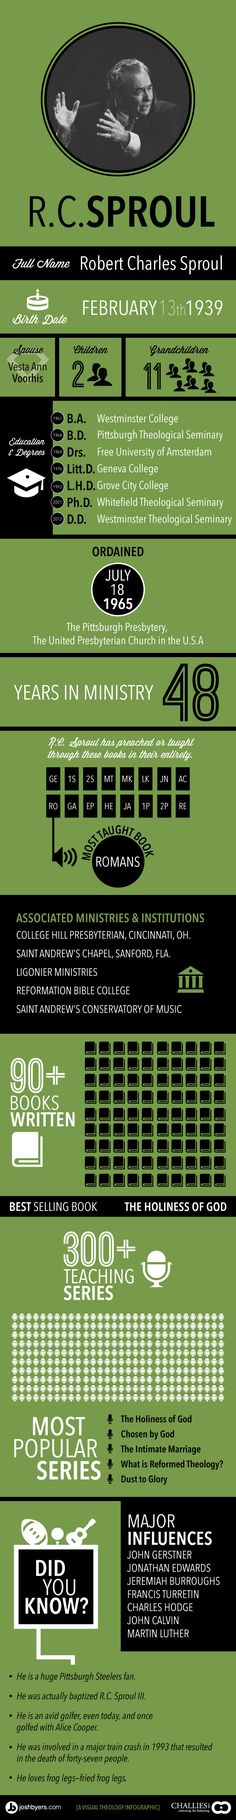 R.C. Sproul Infographic